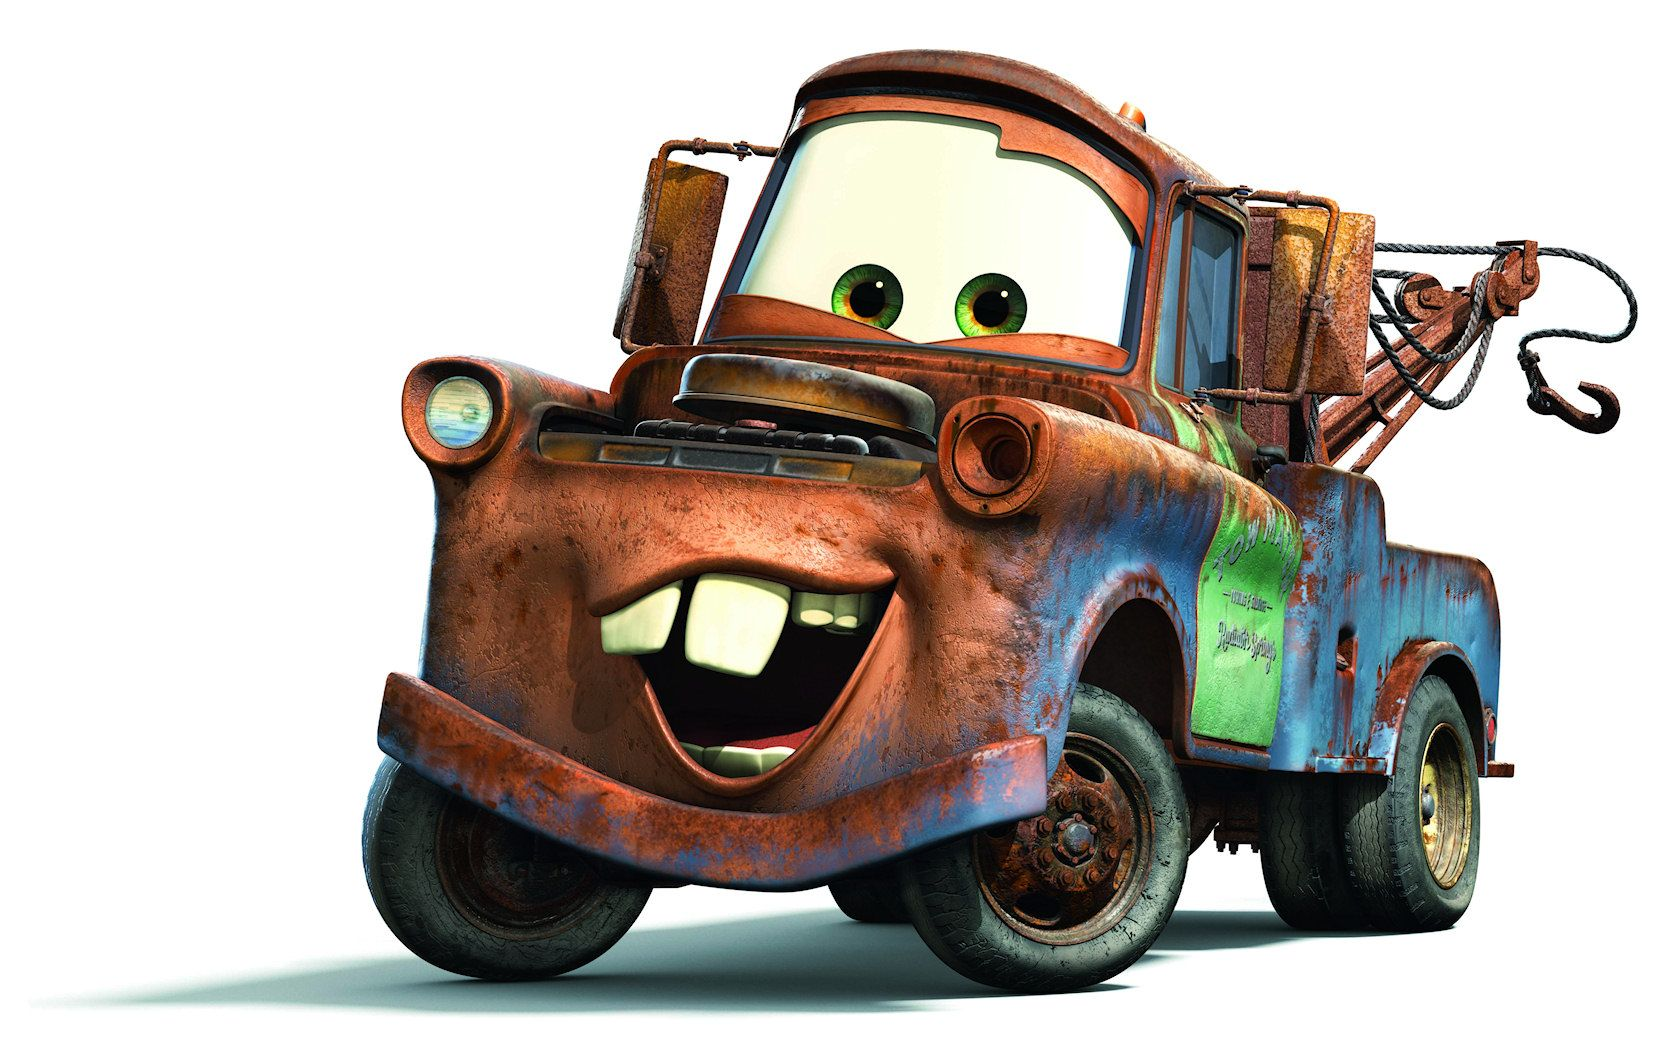 cars the movie Finn McMissile's swoopy sidekick, Holly